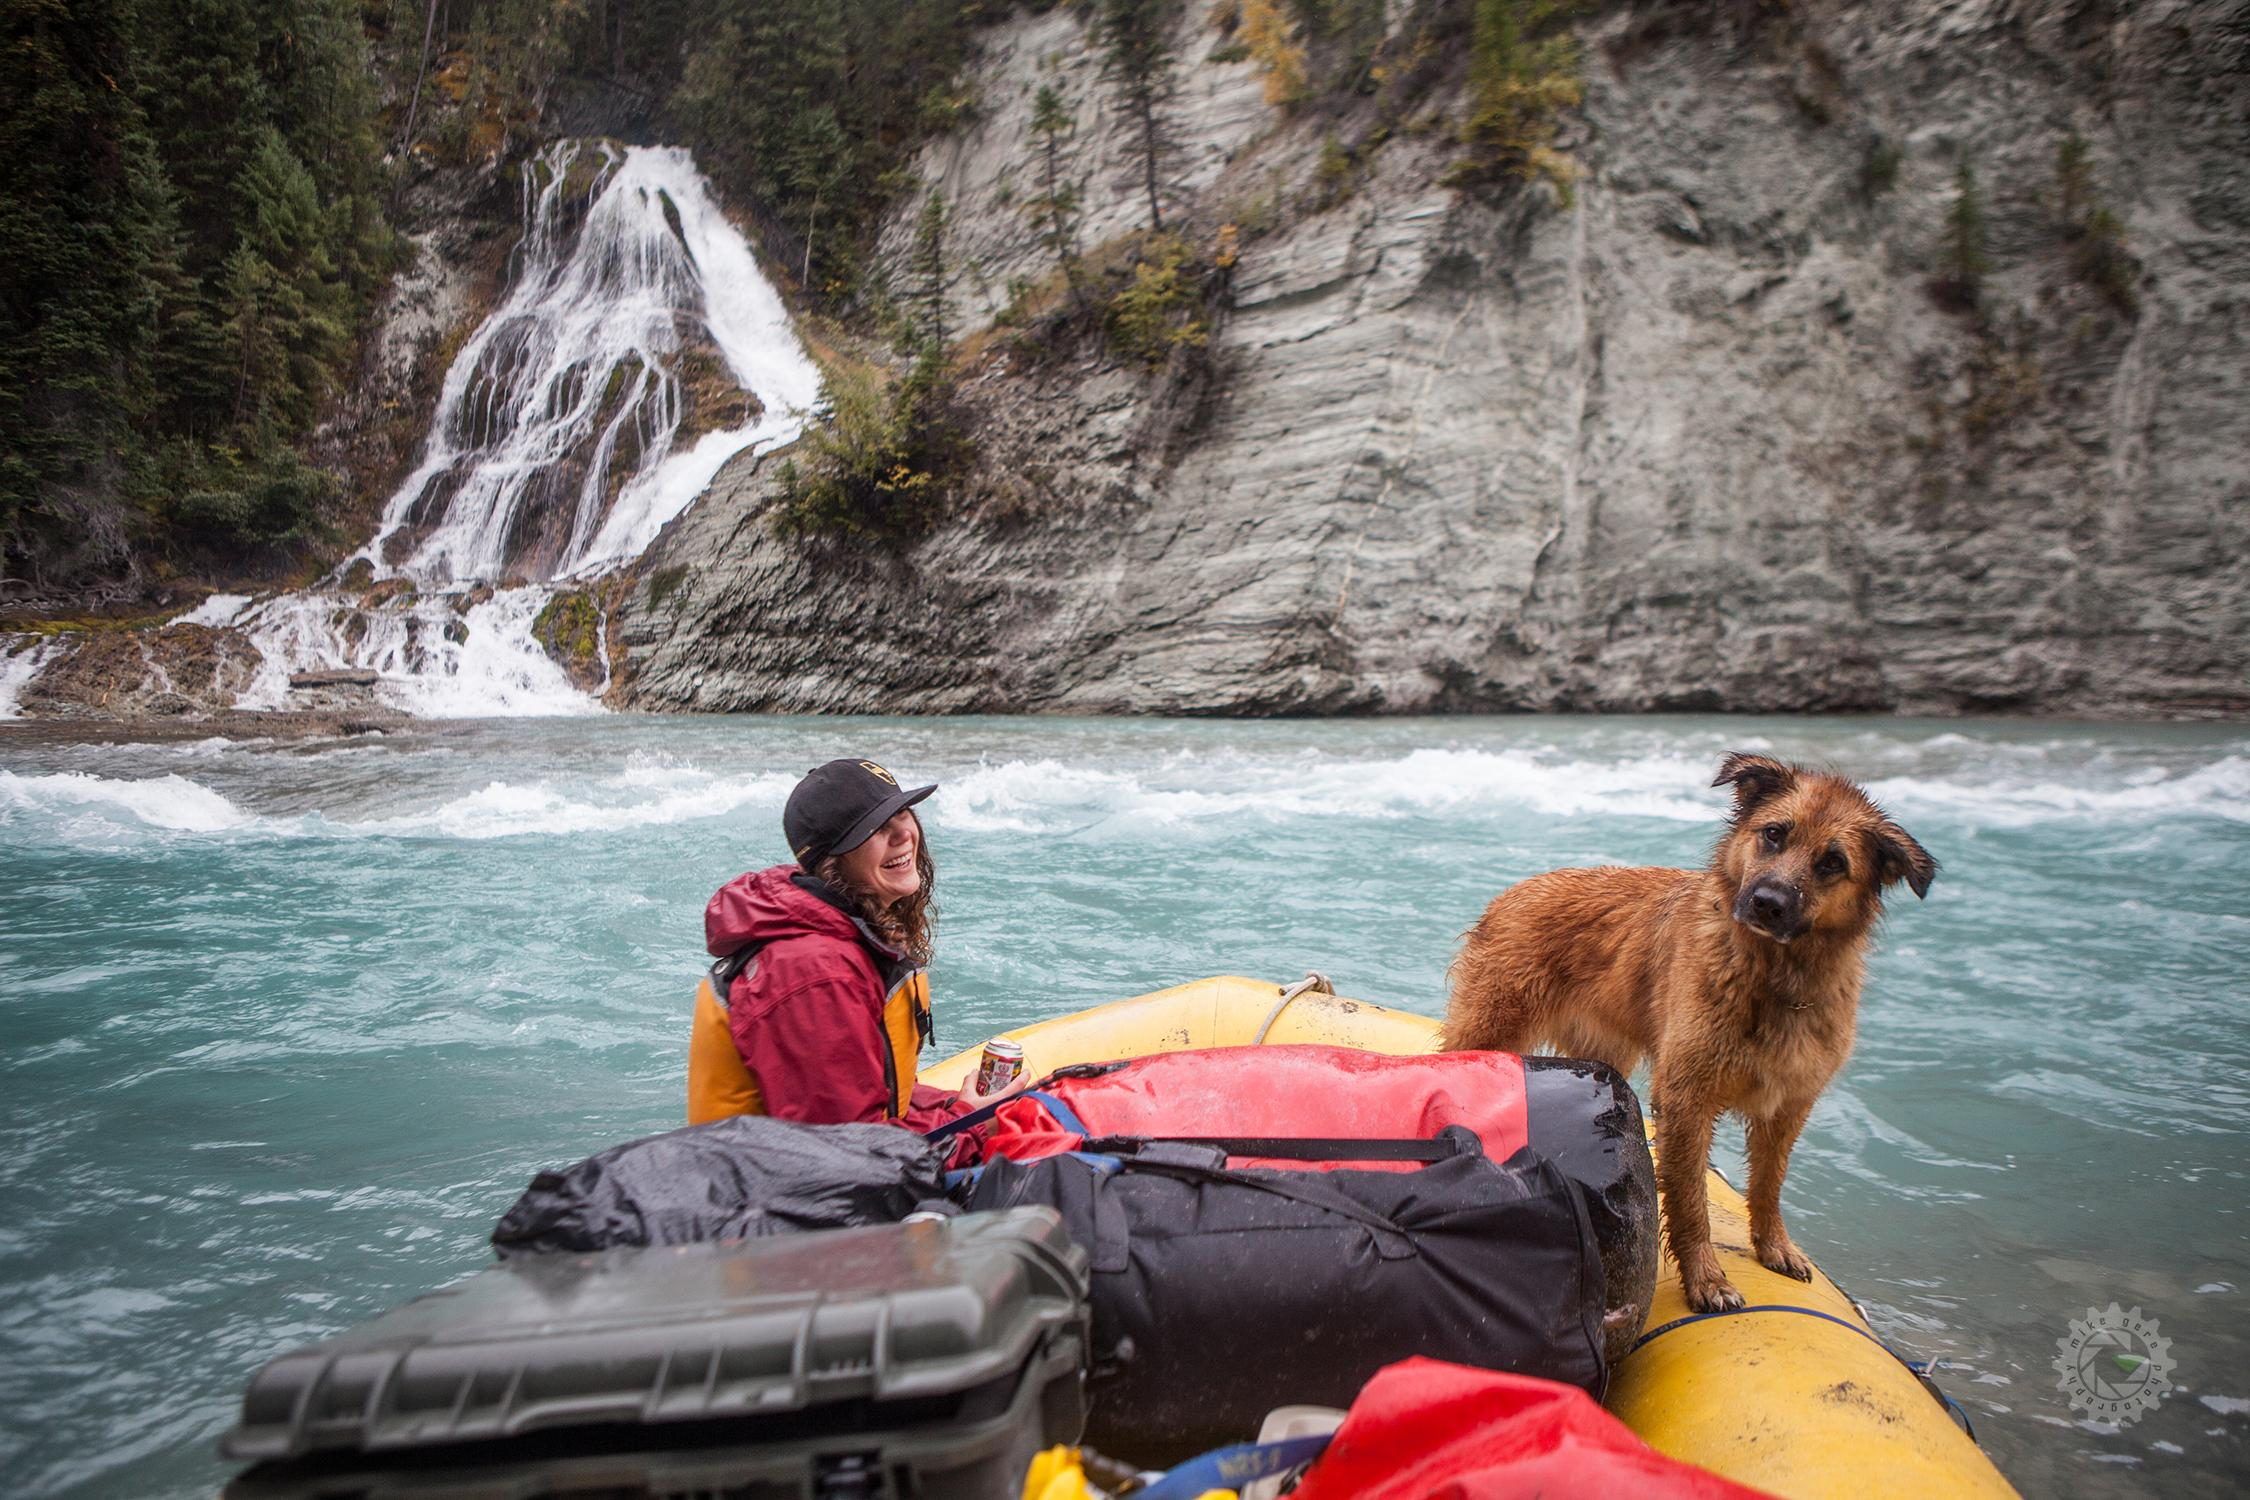 mike,gere,photo,photography,jasper,alberta,canada,adventure,kootenay,river,pedley,falls,raft,rafting,white,water,whitewater,dog,puppy